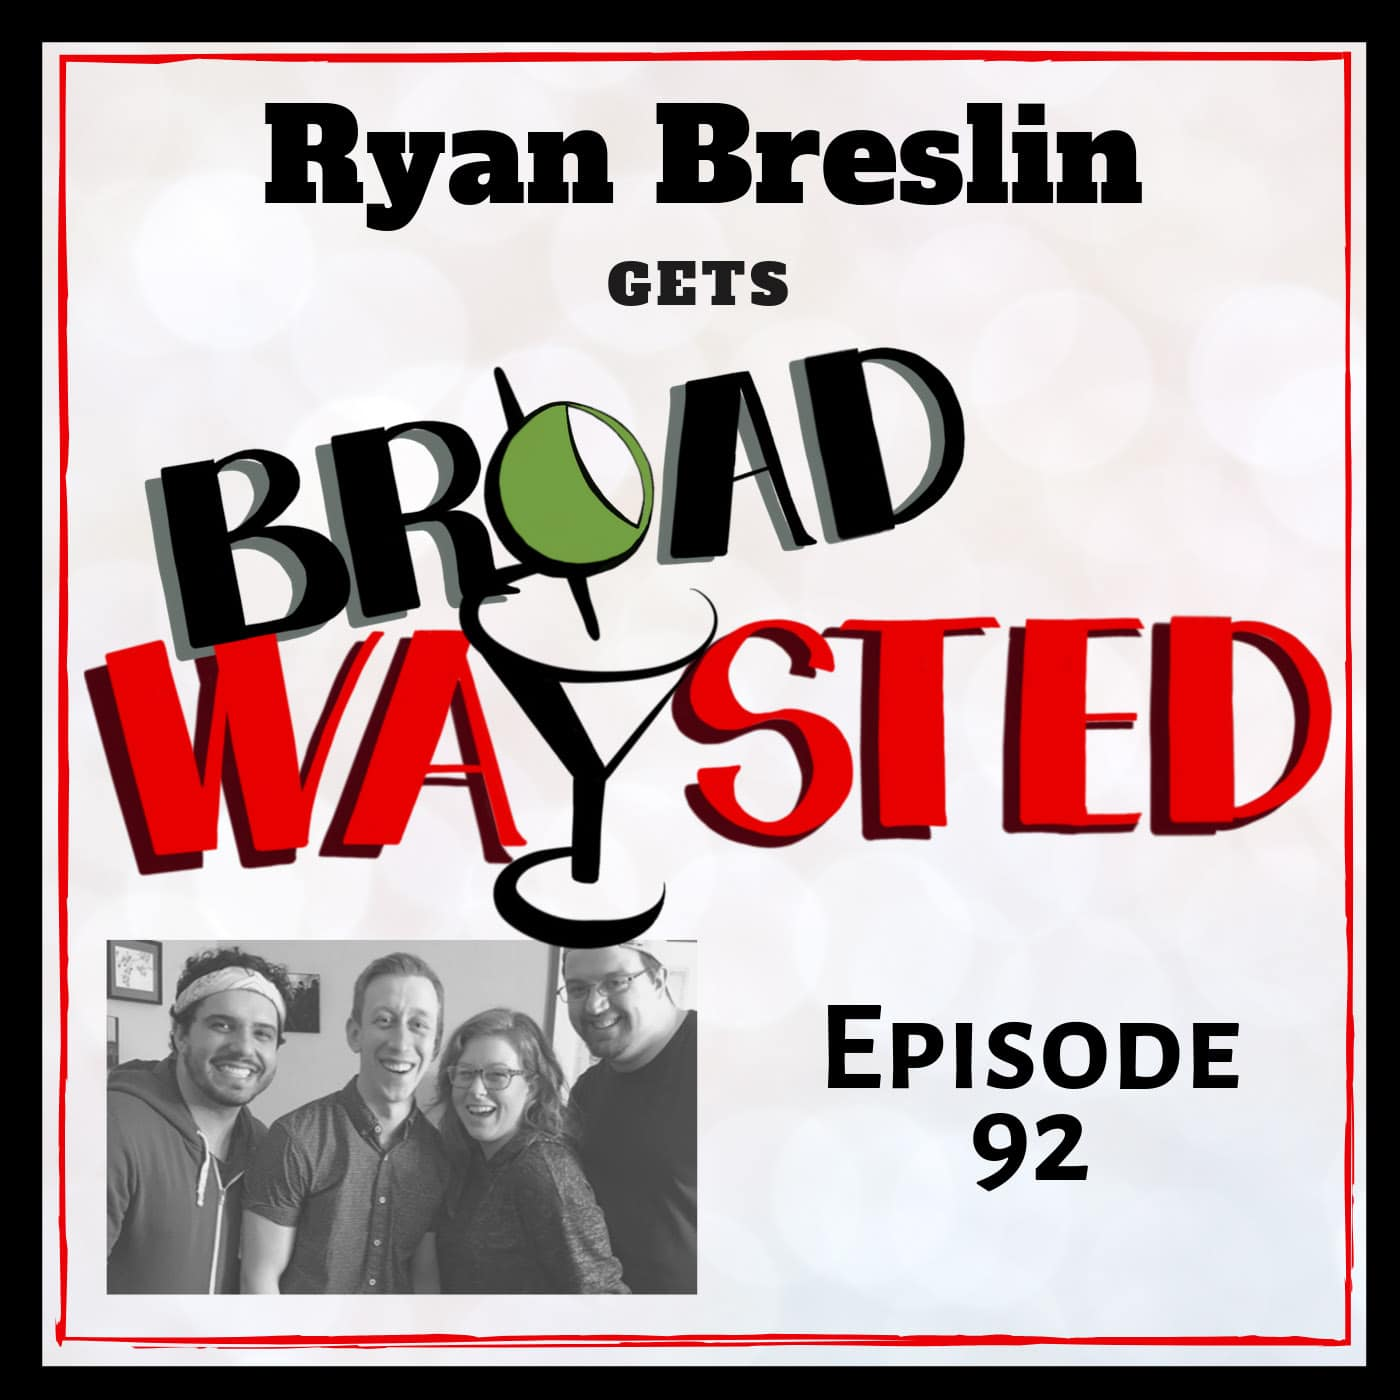 Broadwaysted Ep 92 Ryan Breslin